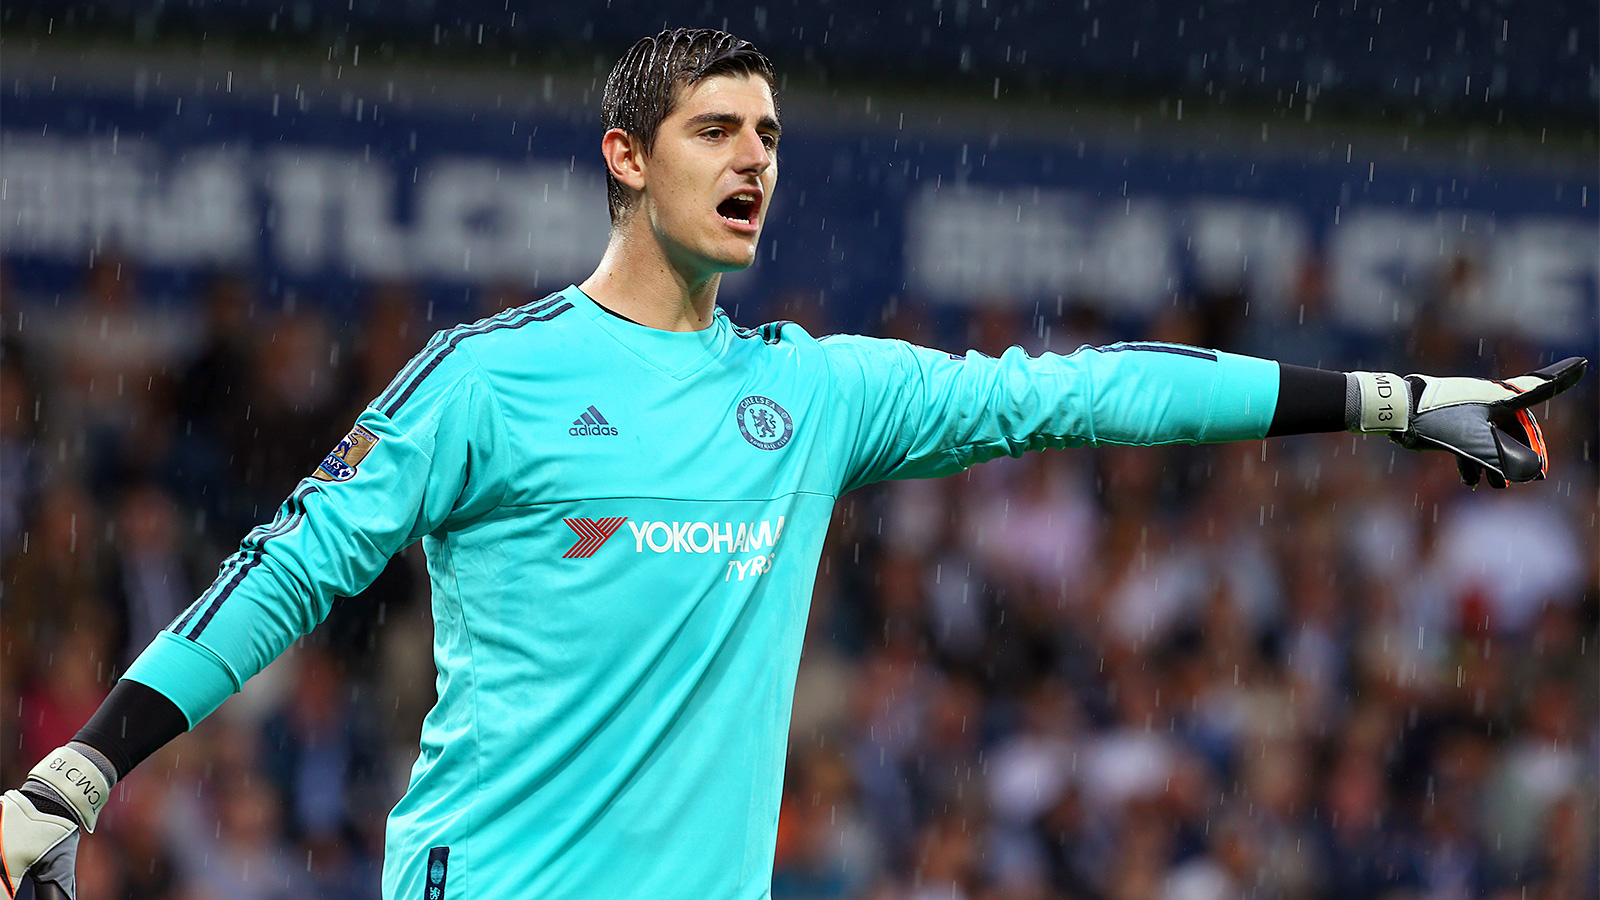 Chelsea's Thibaut Courtois to undergo knee surgery